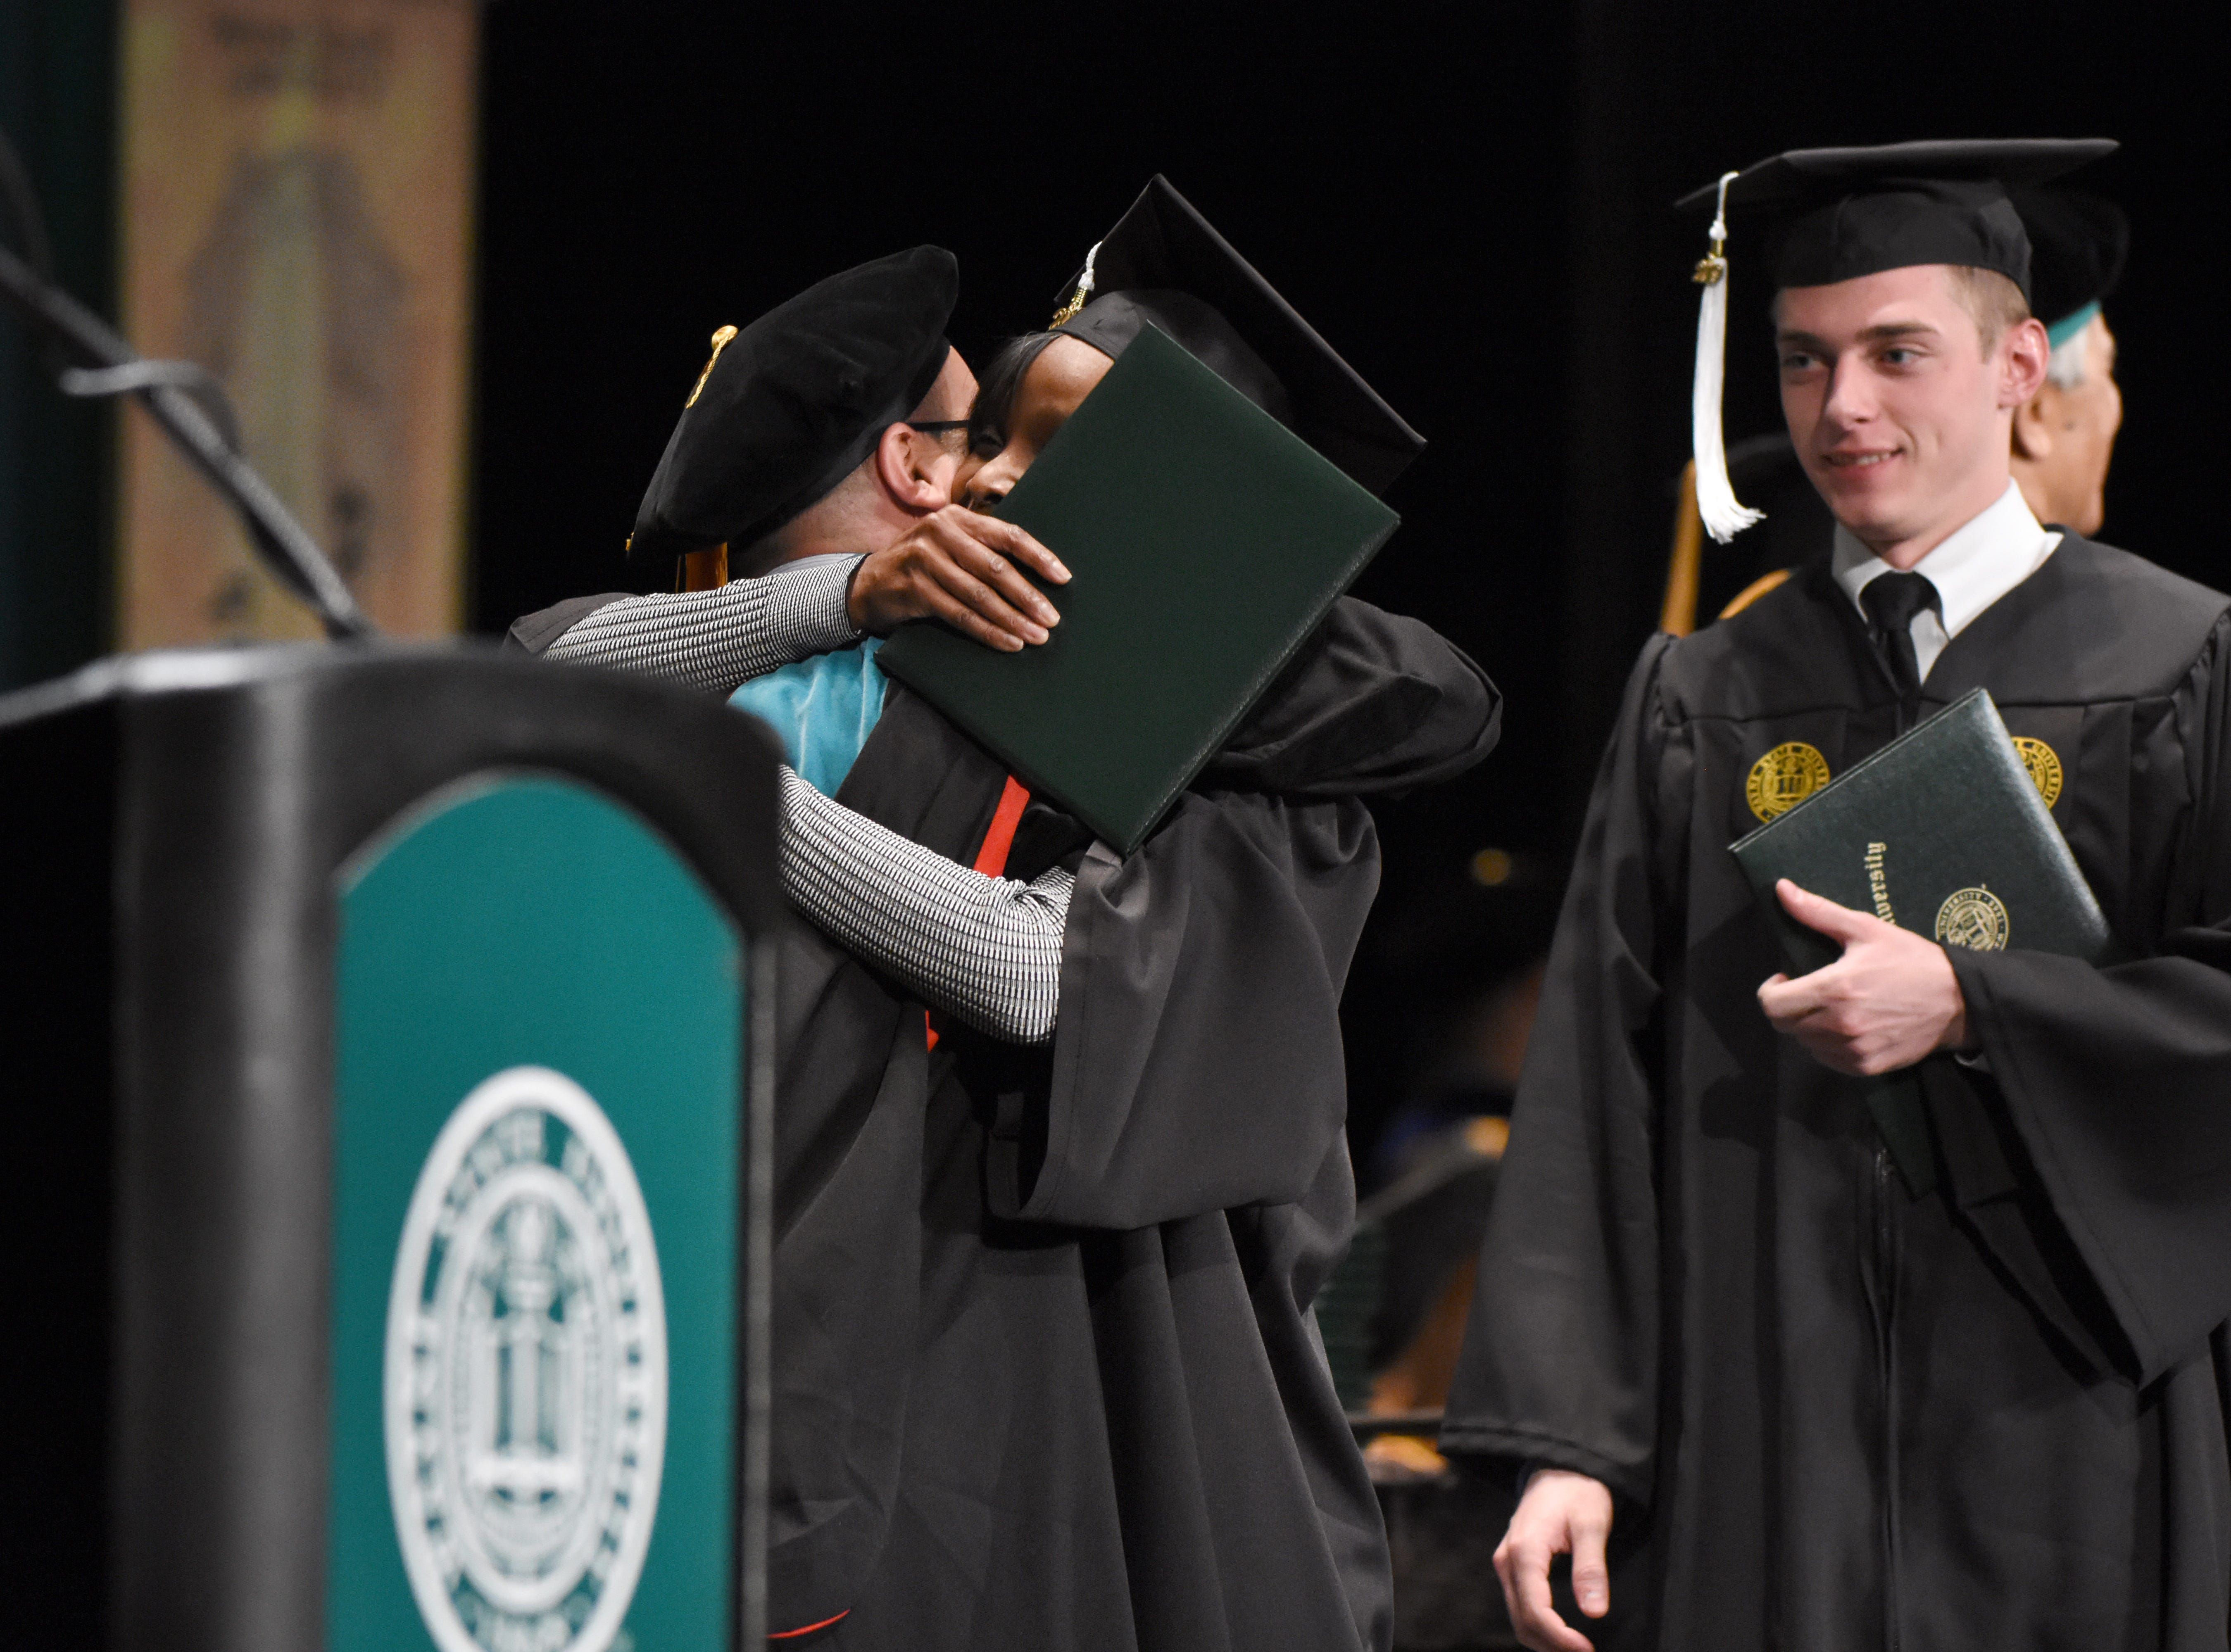 Wayne State University graduates celebrate as they receive their diplomas during commencement exercises at the Fox Theatre on Friday, May 3, 2019.